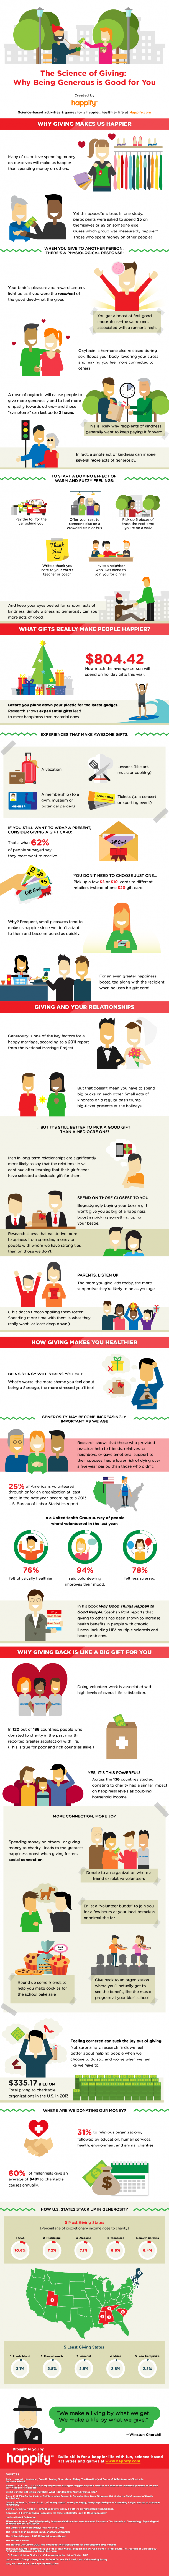 "<strong><a href=""http://my.happify.com/hd/science-of-giving-infographic/"">Happify</a></strong>"